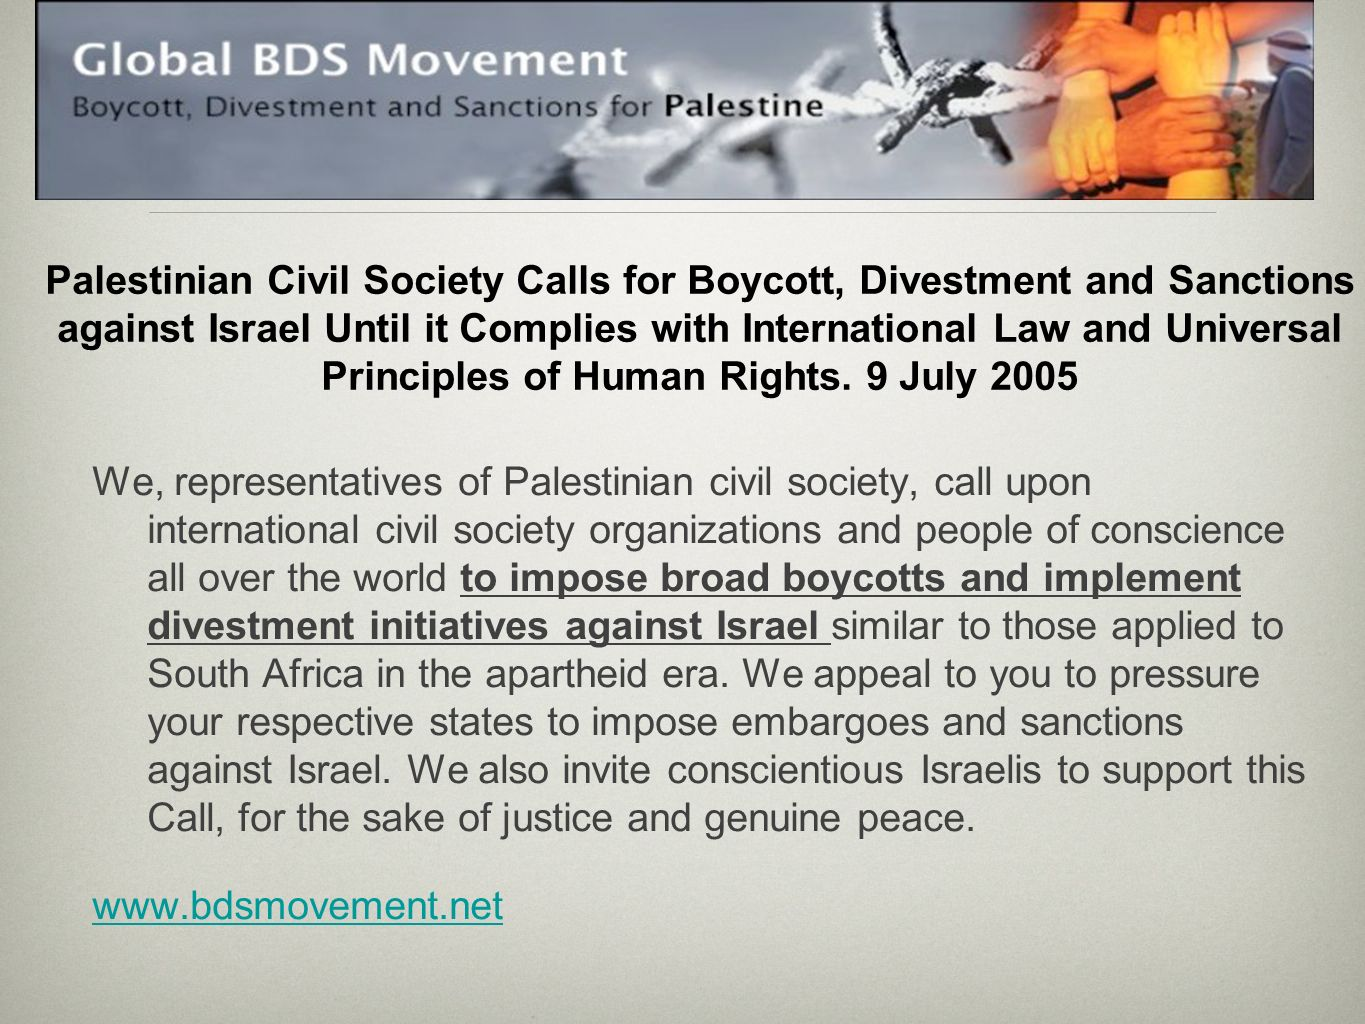 Palestinian Civil Society Calls for Boycott, Divestment and Sanctions against Israel Until it Complies with International Law and Universal Principles of Human Rights.